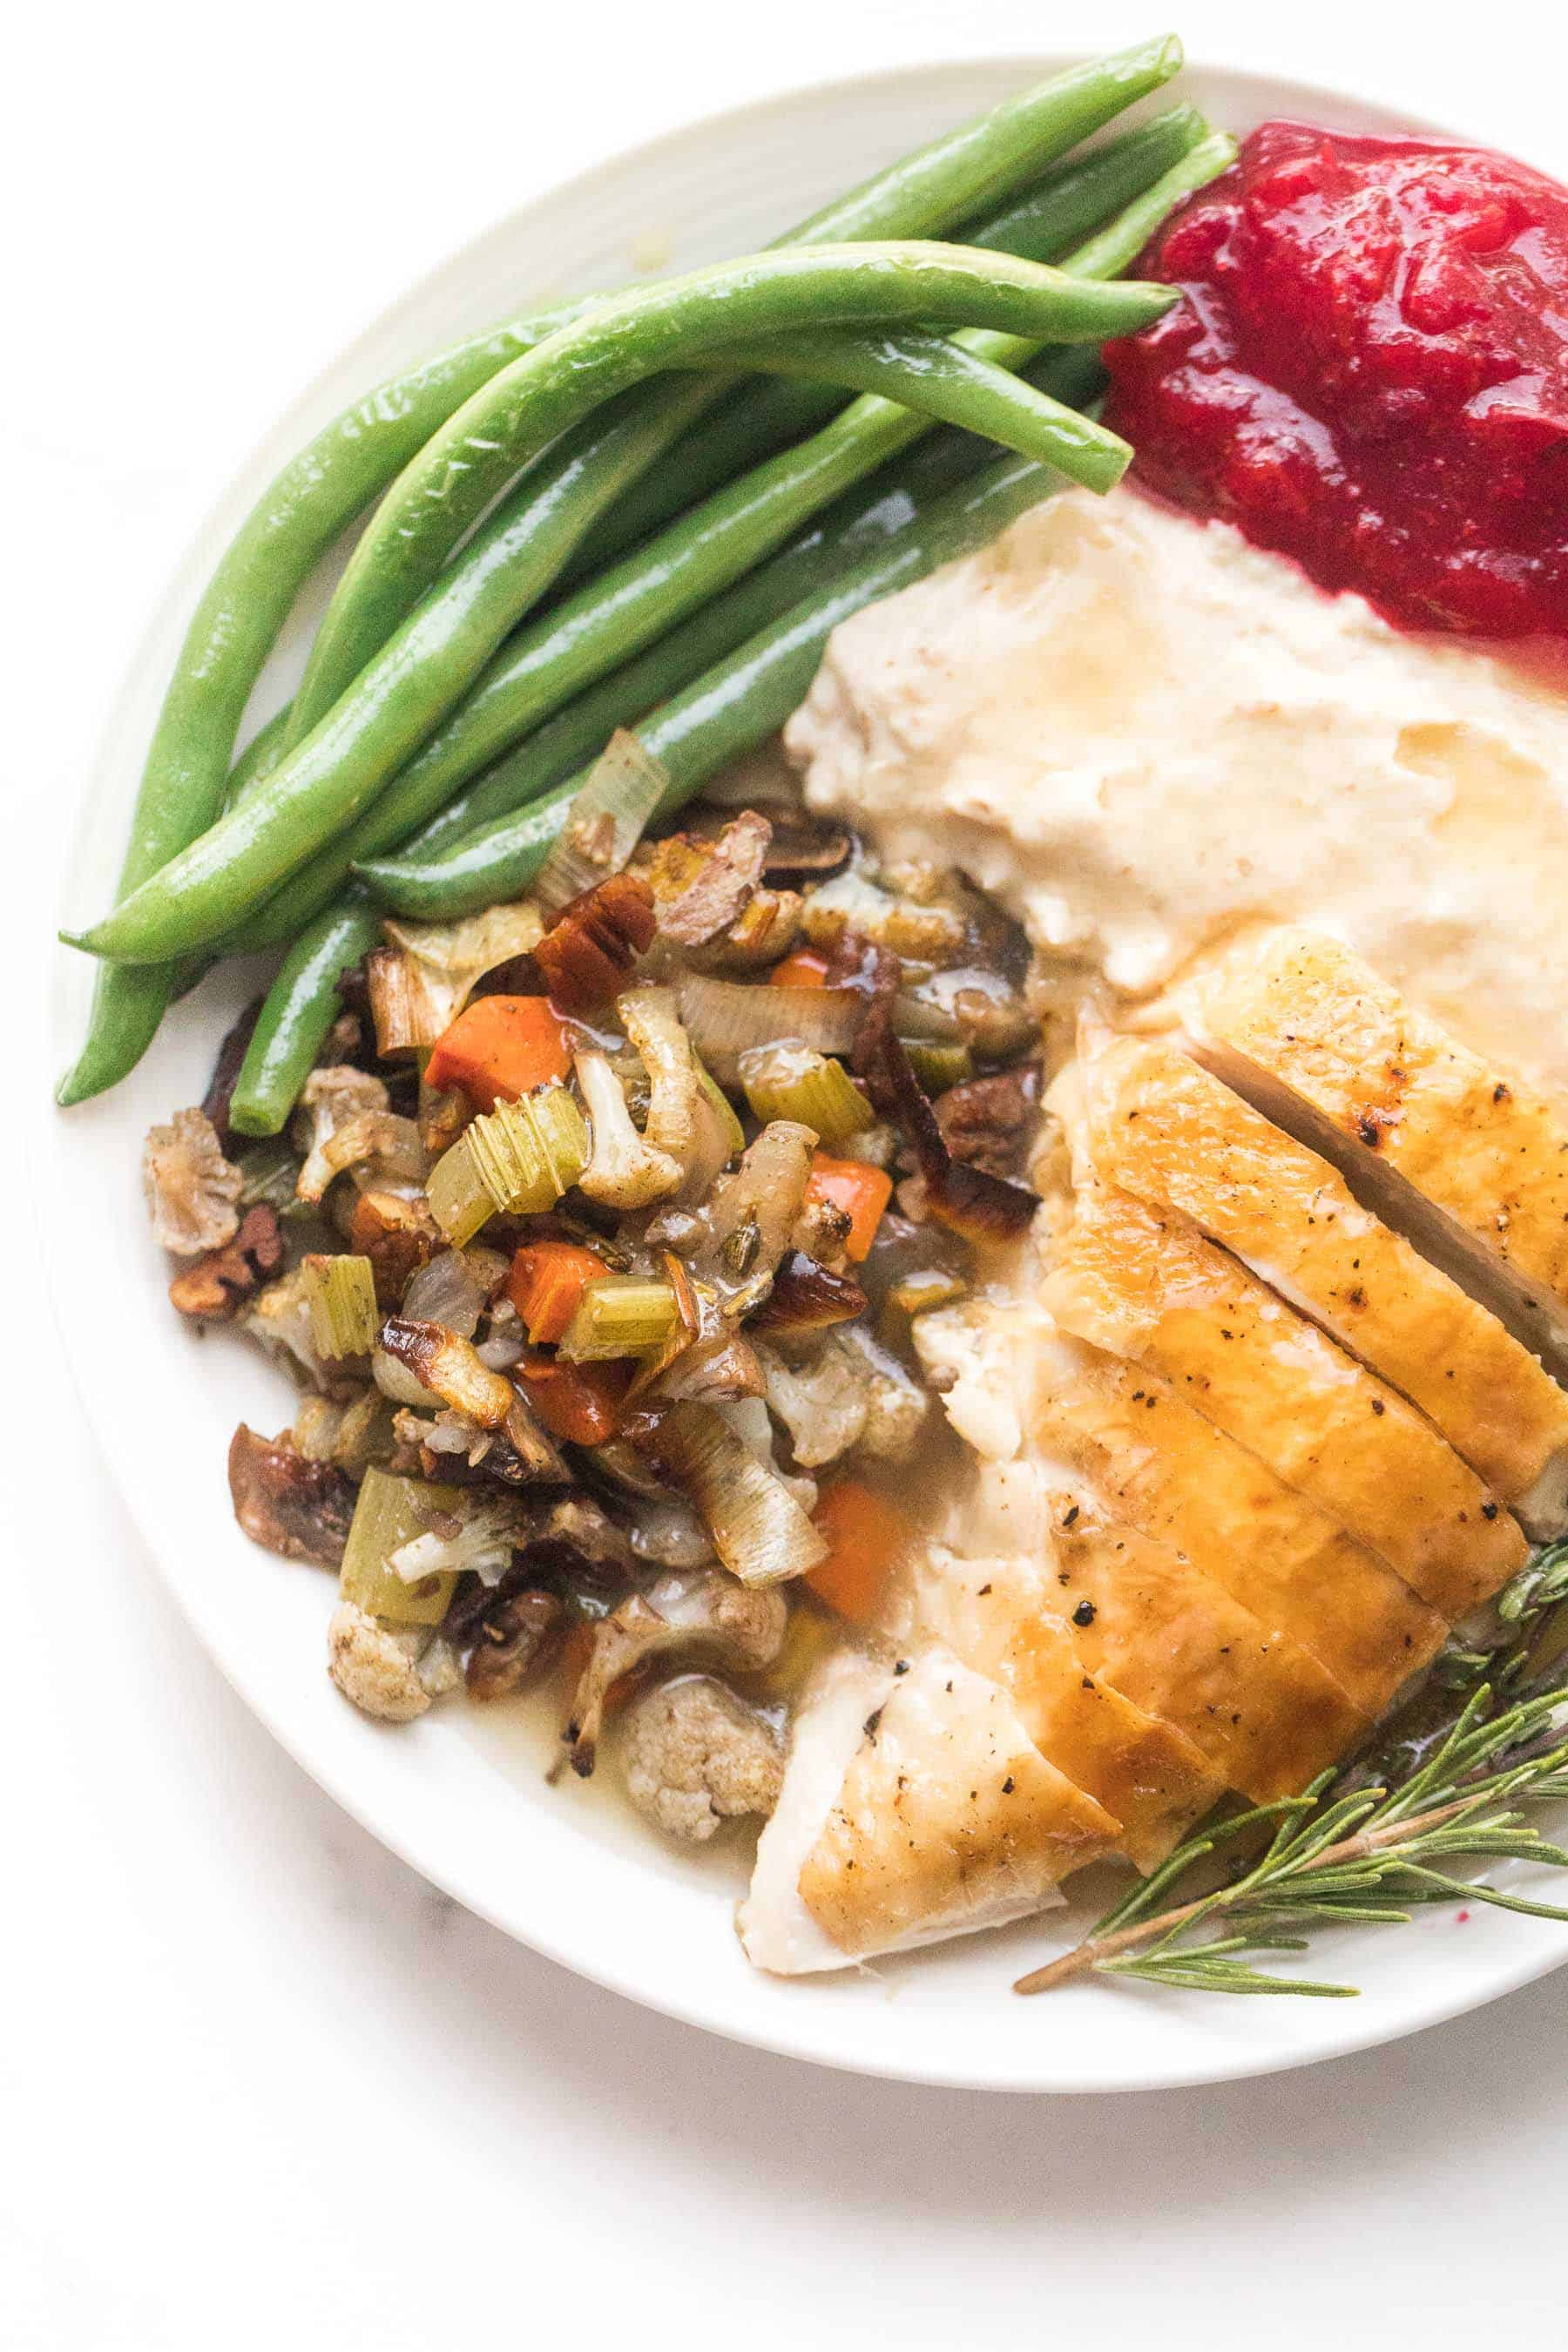 whole30 + keto thanksgiving dinner plate with turkey, cauliflower stuffing, green beans, mashed cauliflower, and keto cranberries